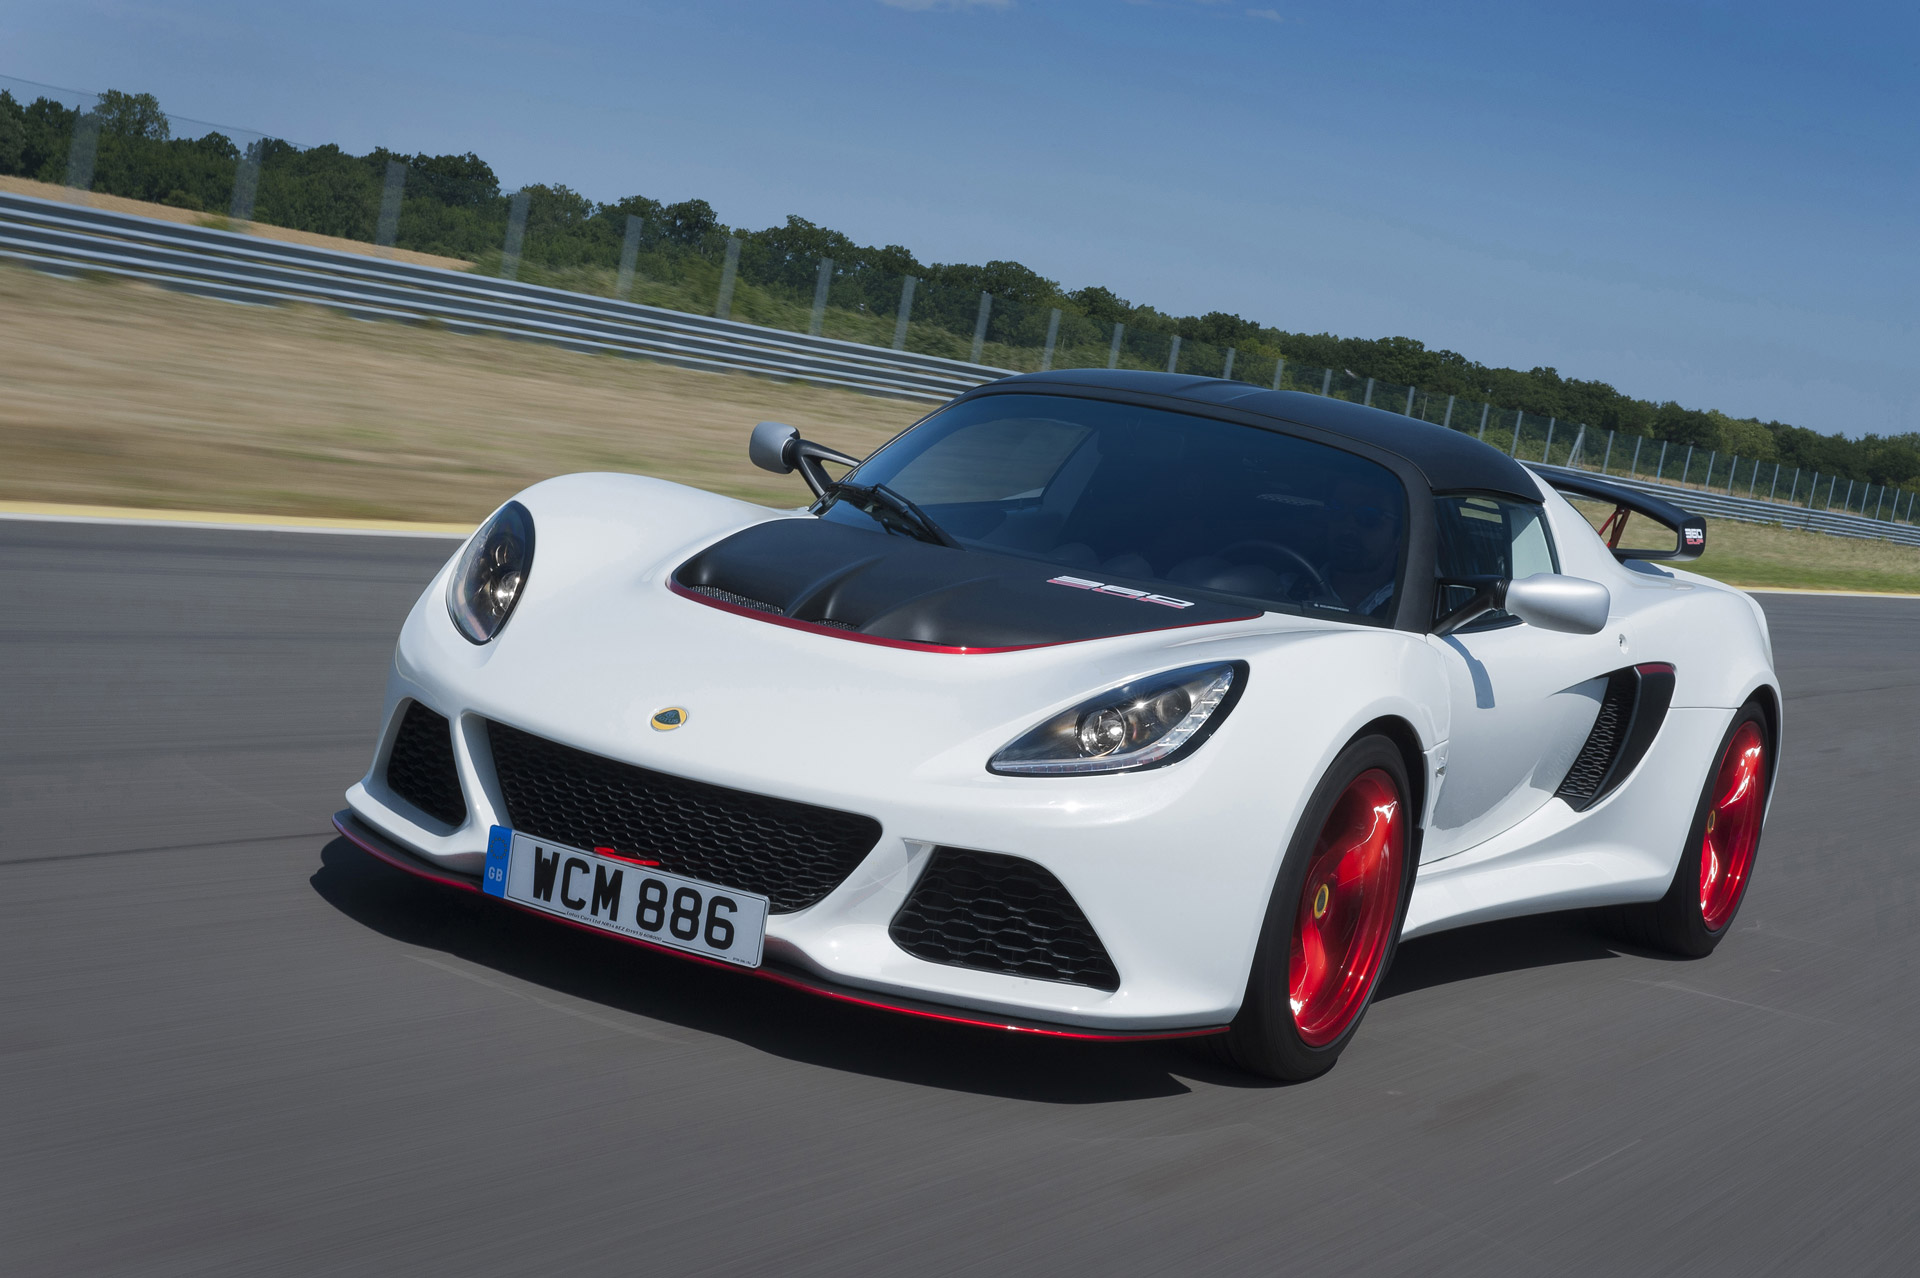 lotus exige v6 cup track car gets updated limited edition 360 model. Black Bedroom Furniture Sets. Home Design Ideas